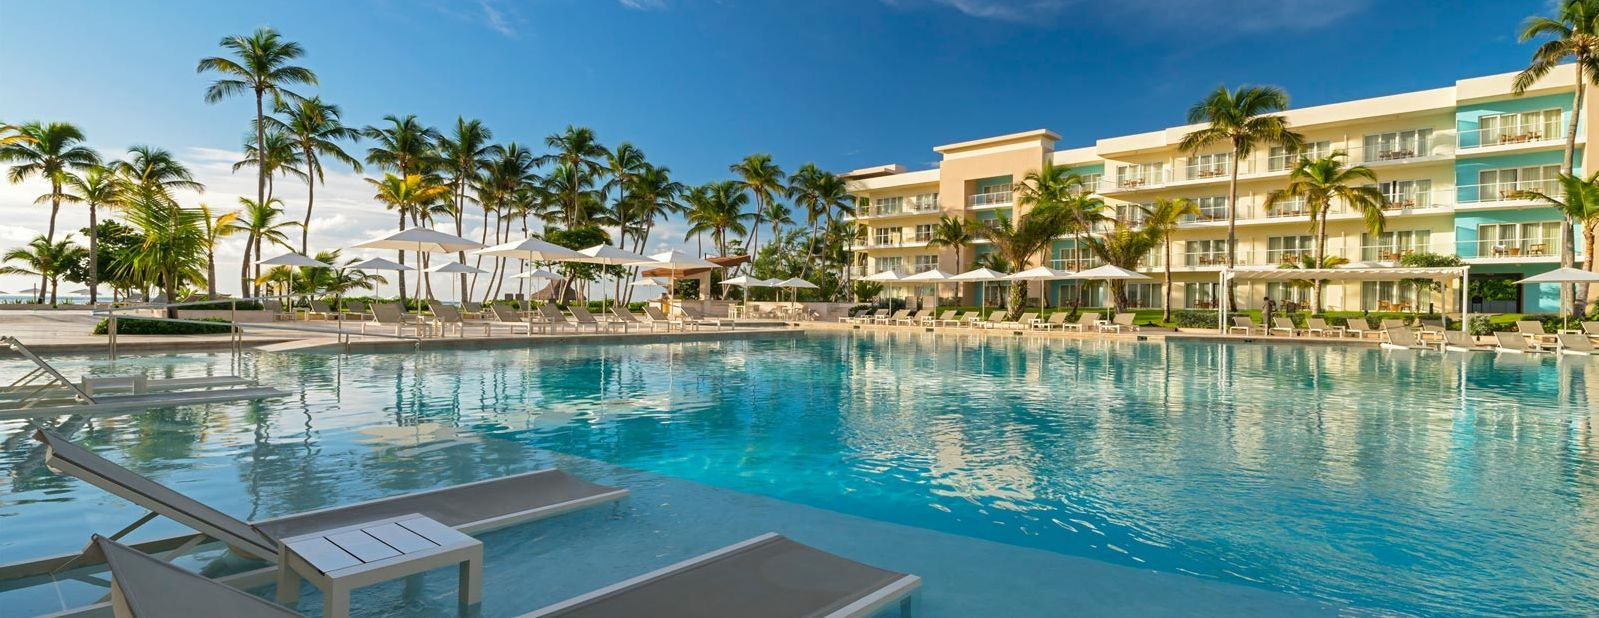 Westin Puntacana Resort & Club - Pool